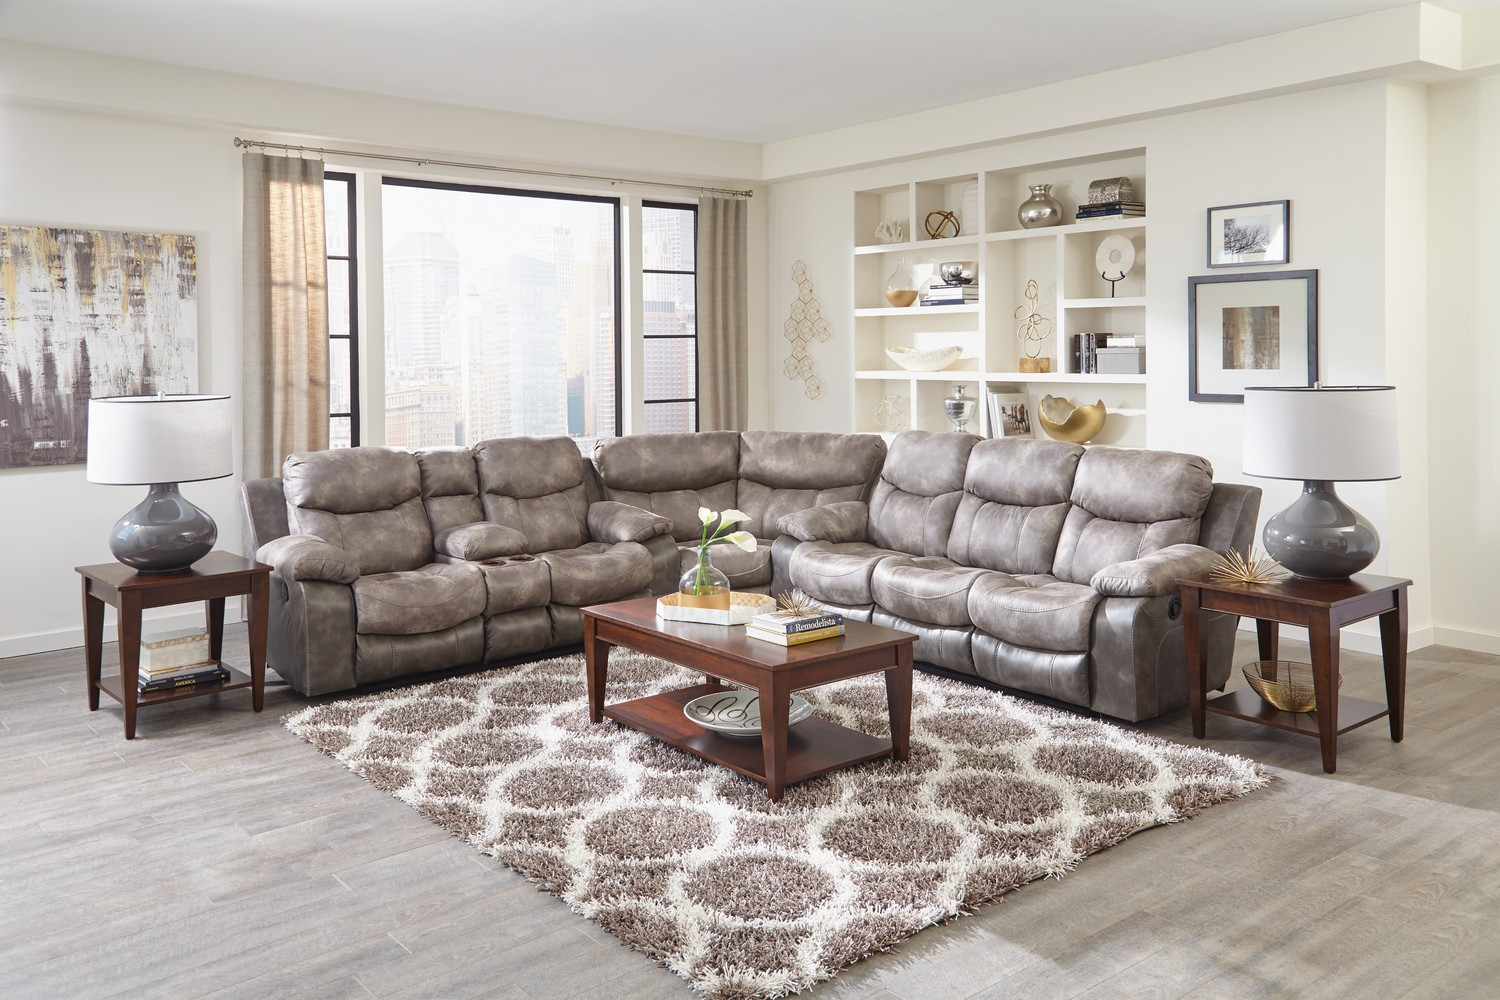 CatNapper Henderson Reclining Sectional Sofa Set - Steel